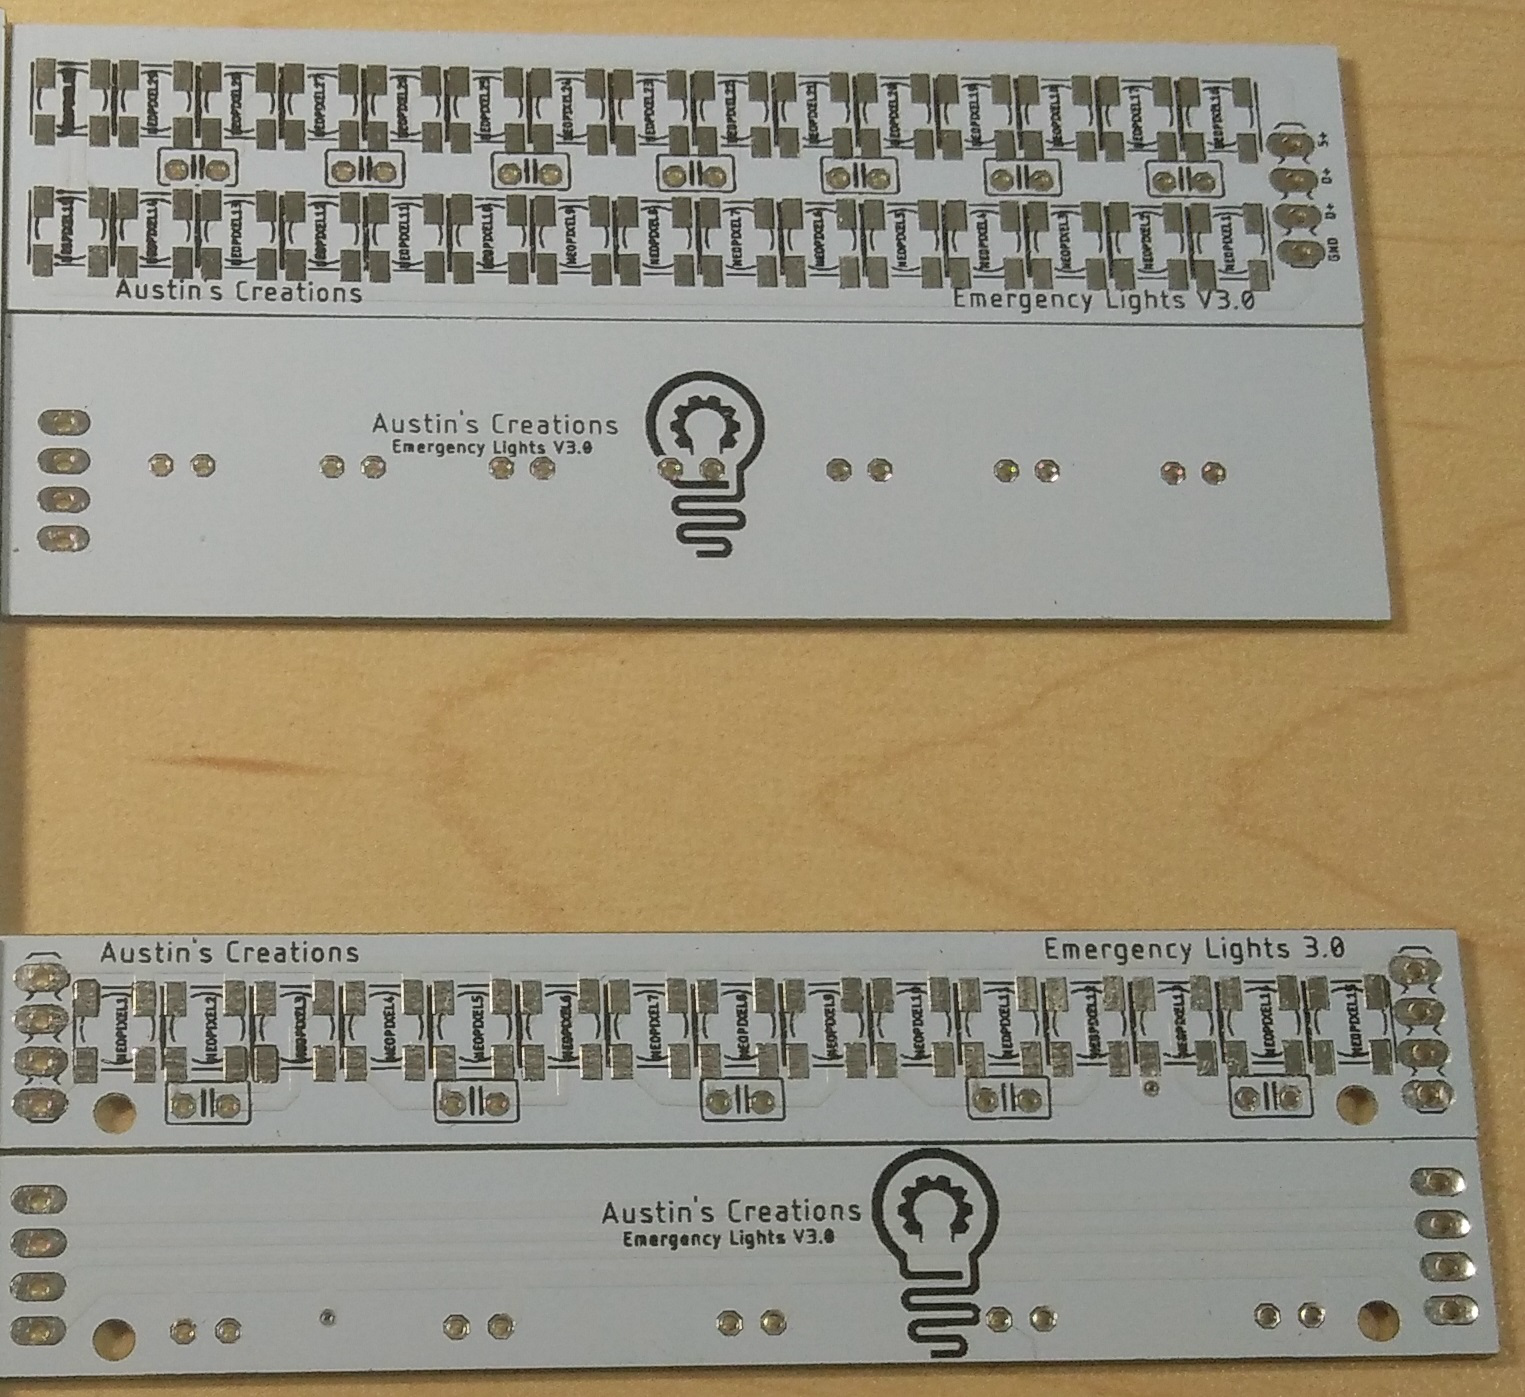 Blank PCB's before part population